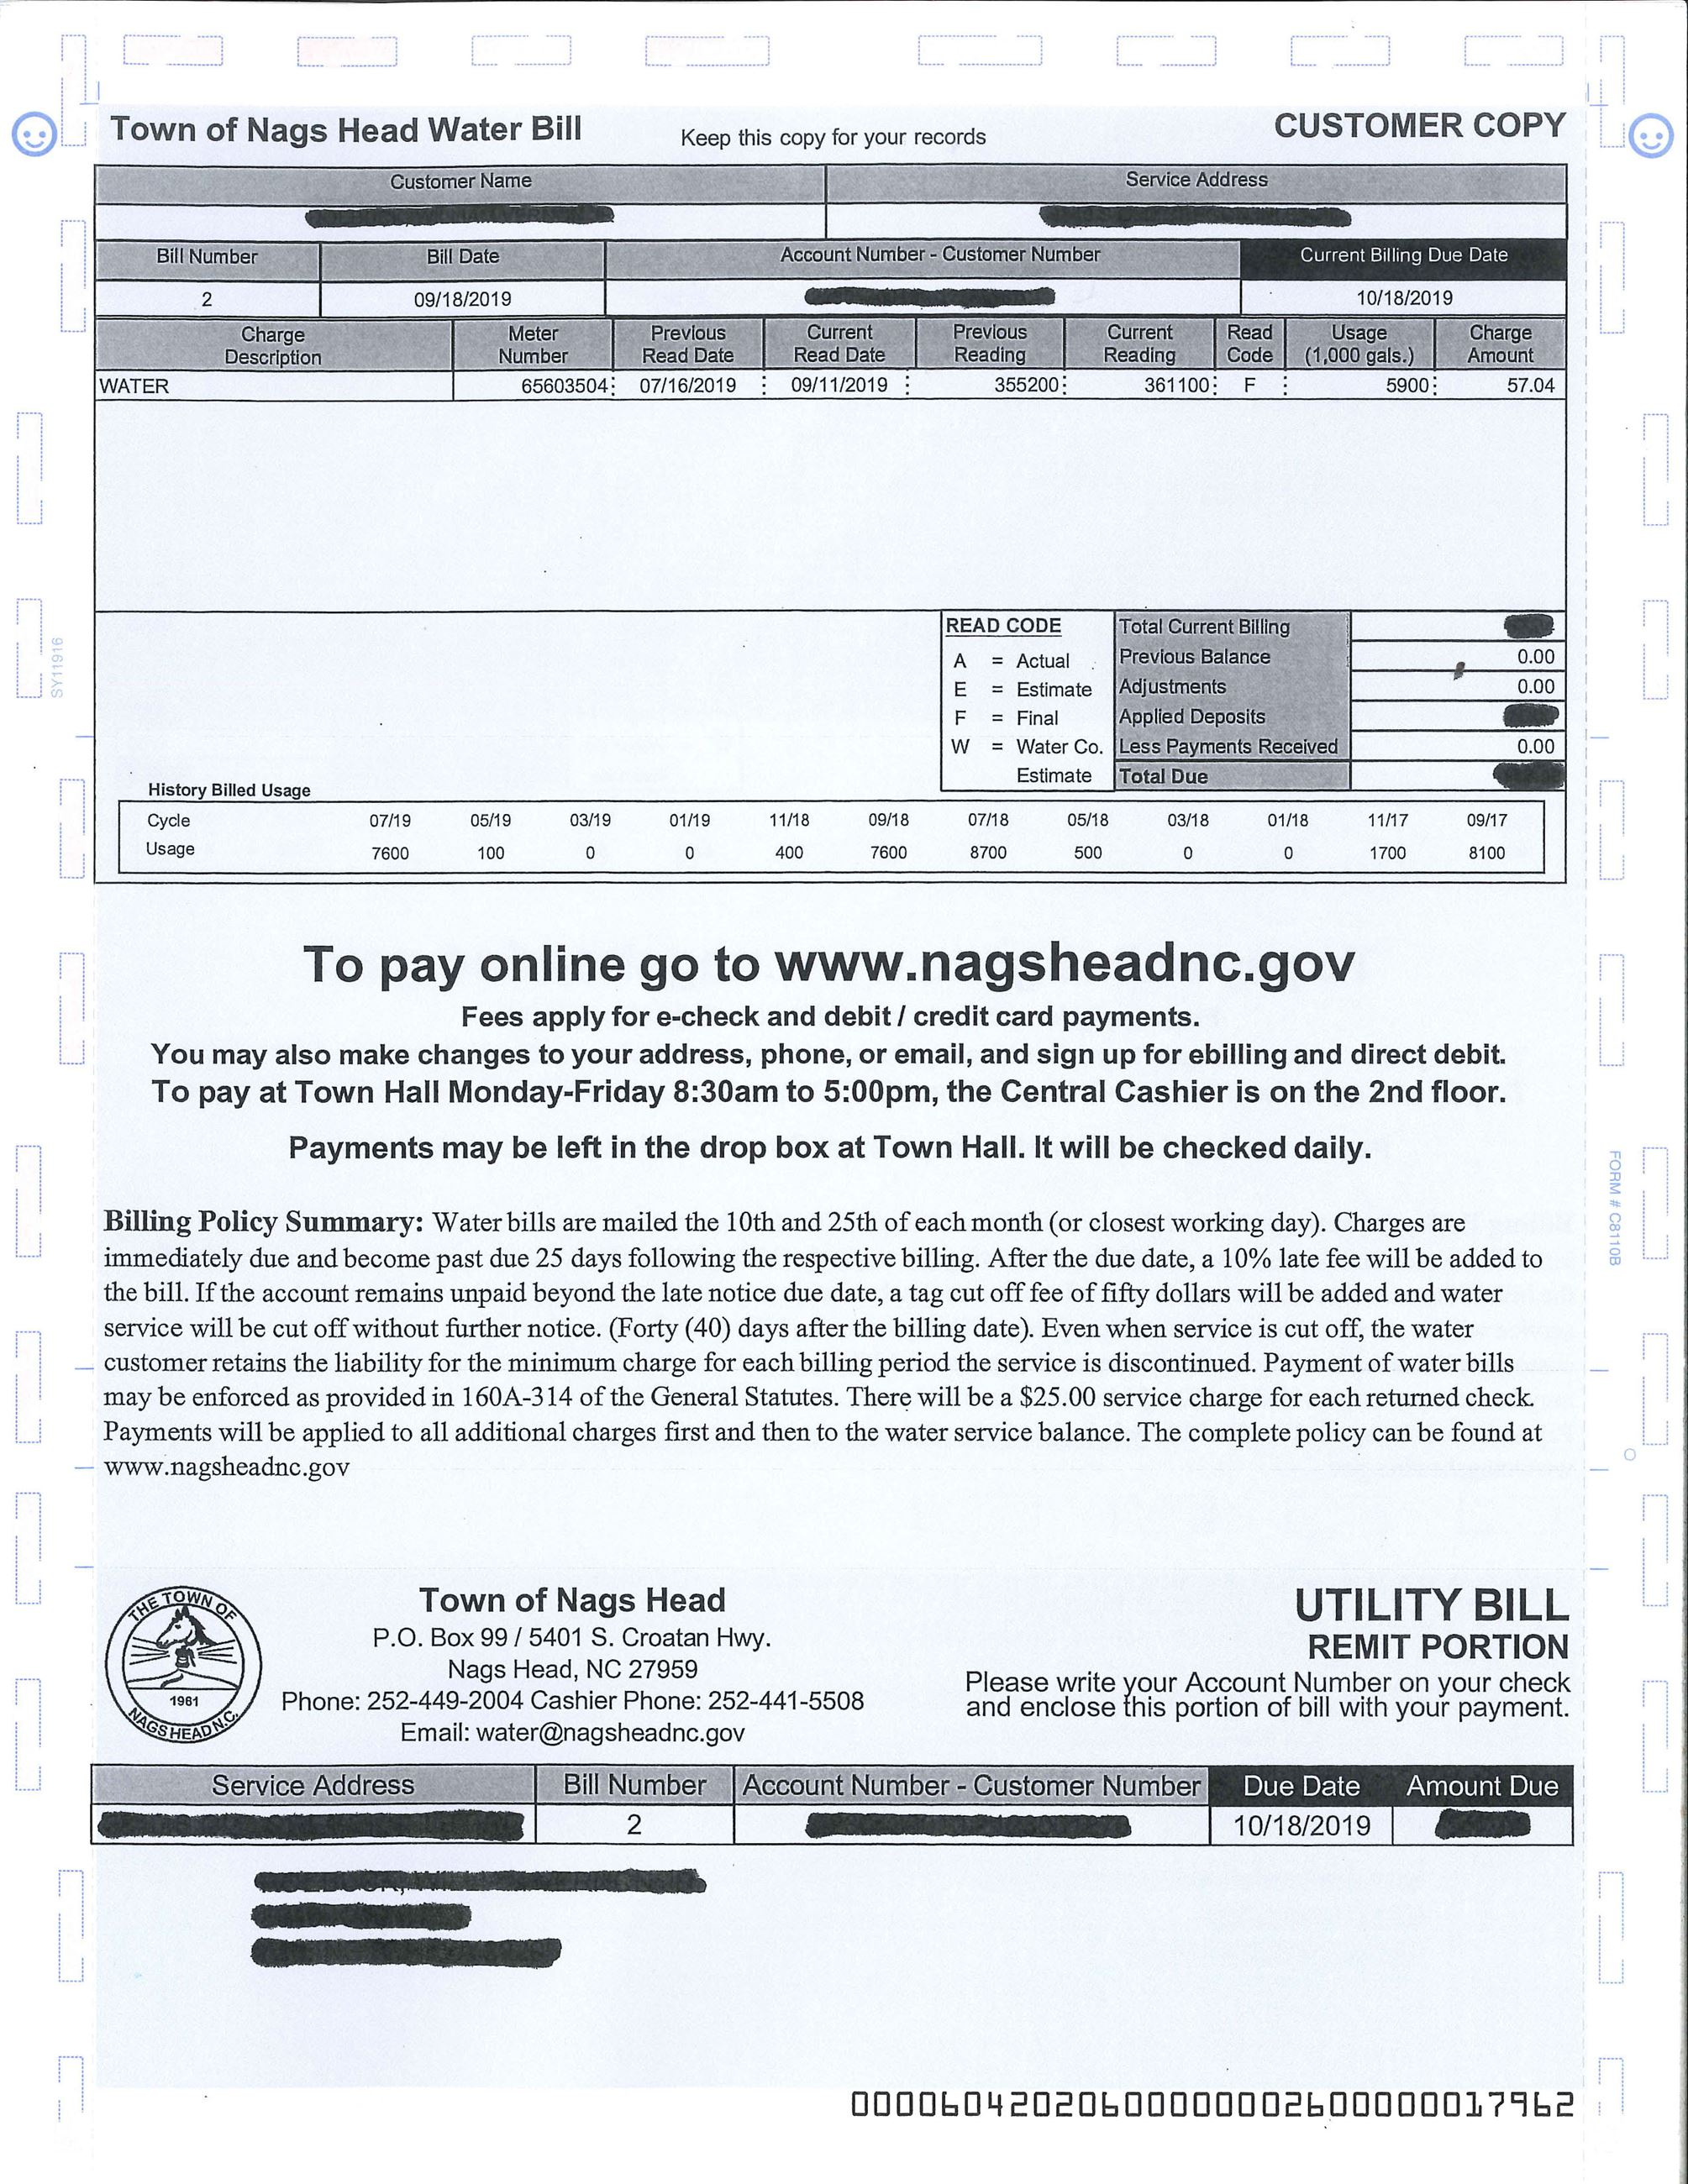 Town of Nags Head Water Bill